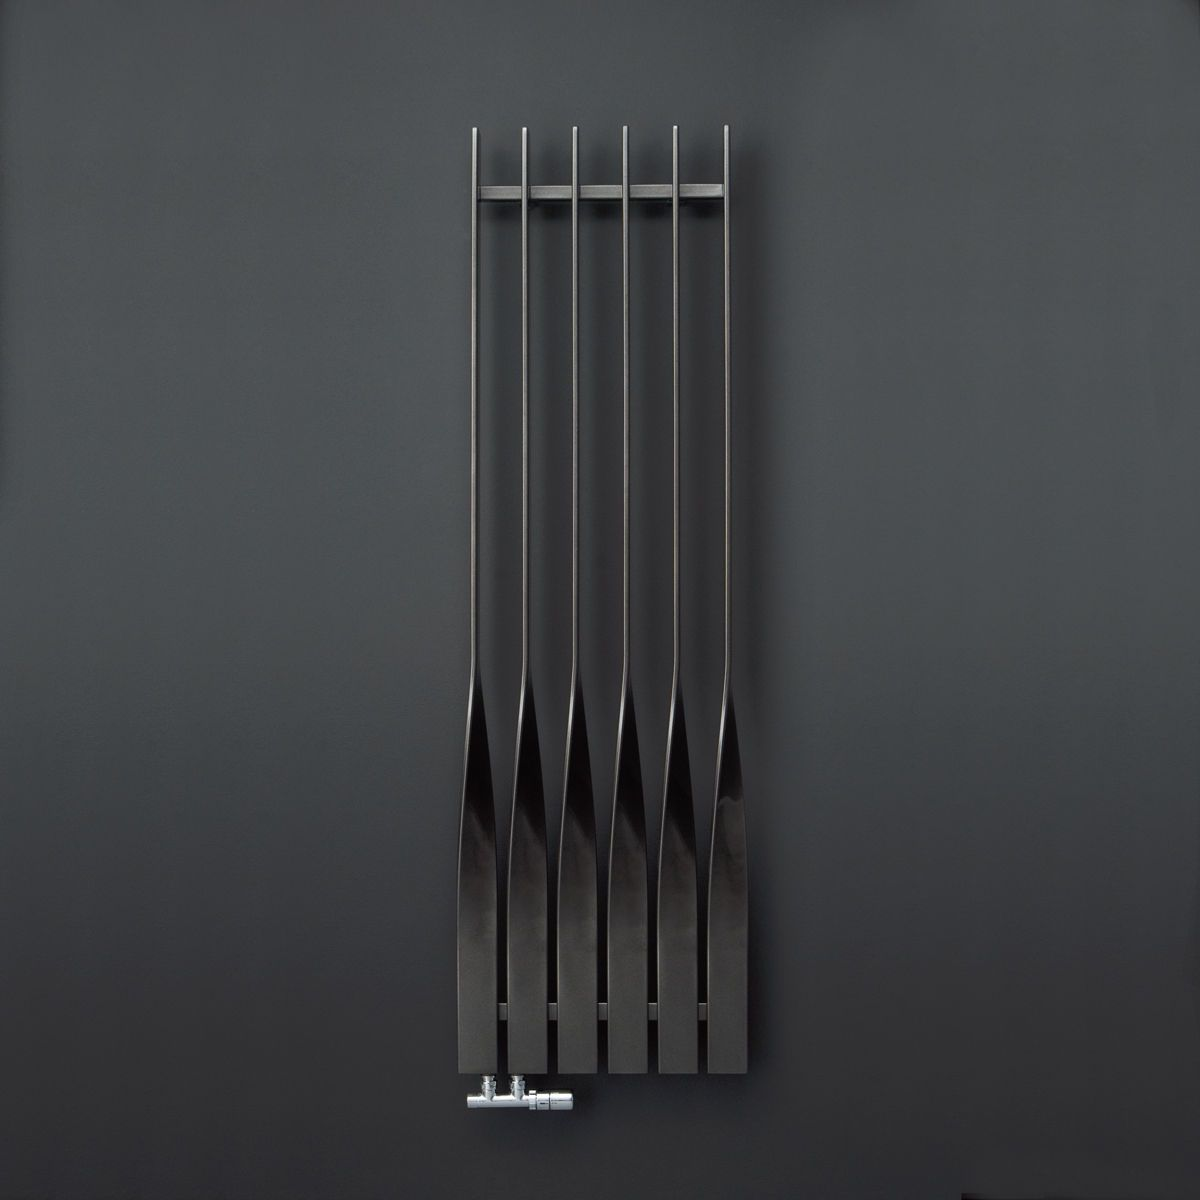 radiateur eau chaude vertical design original cyklon by m4m studio terma sp z o o. Black Bedroom Furniture Sets. Home Design Ideas